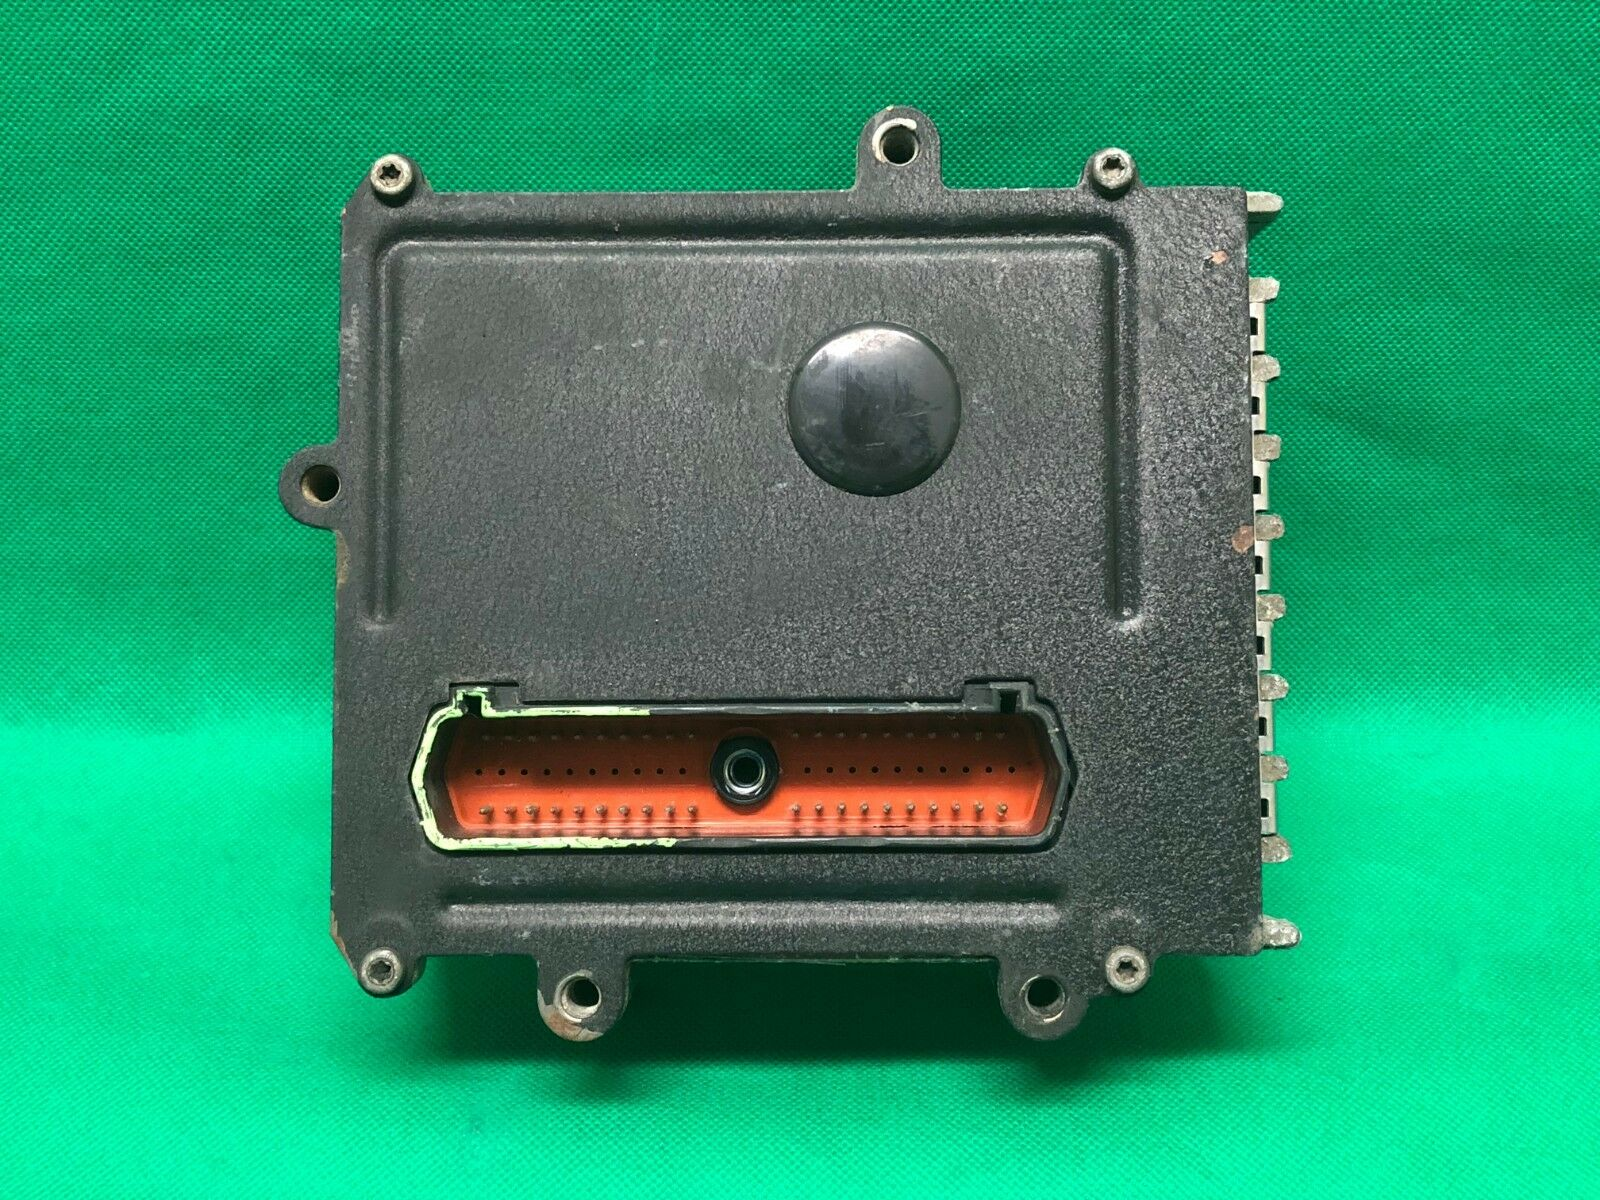 medium resolution of 2003 dodge caravan tcu transmission control module at unit p04727721ae 721ae 721